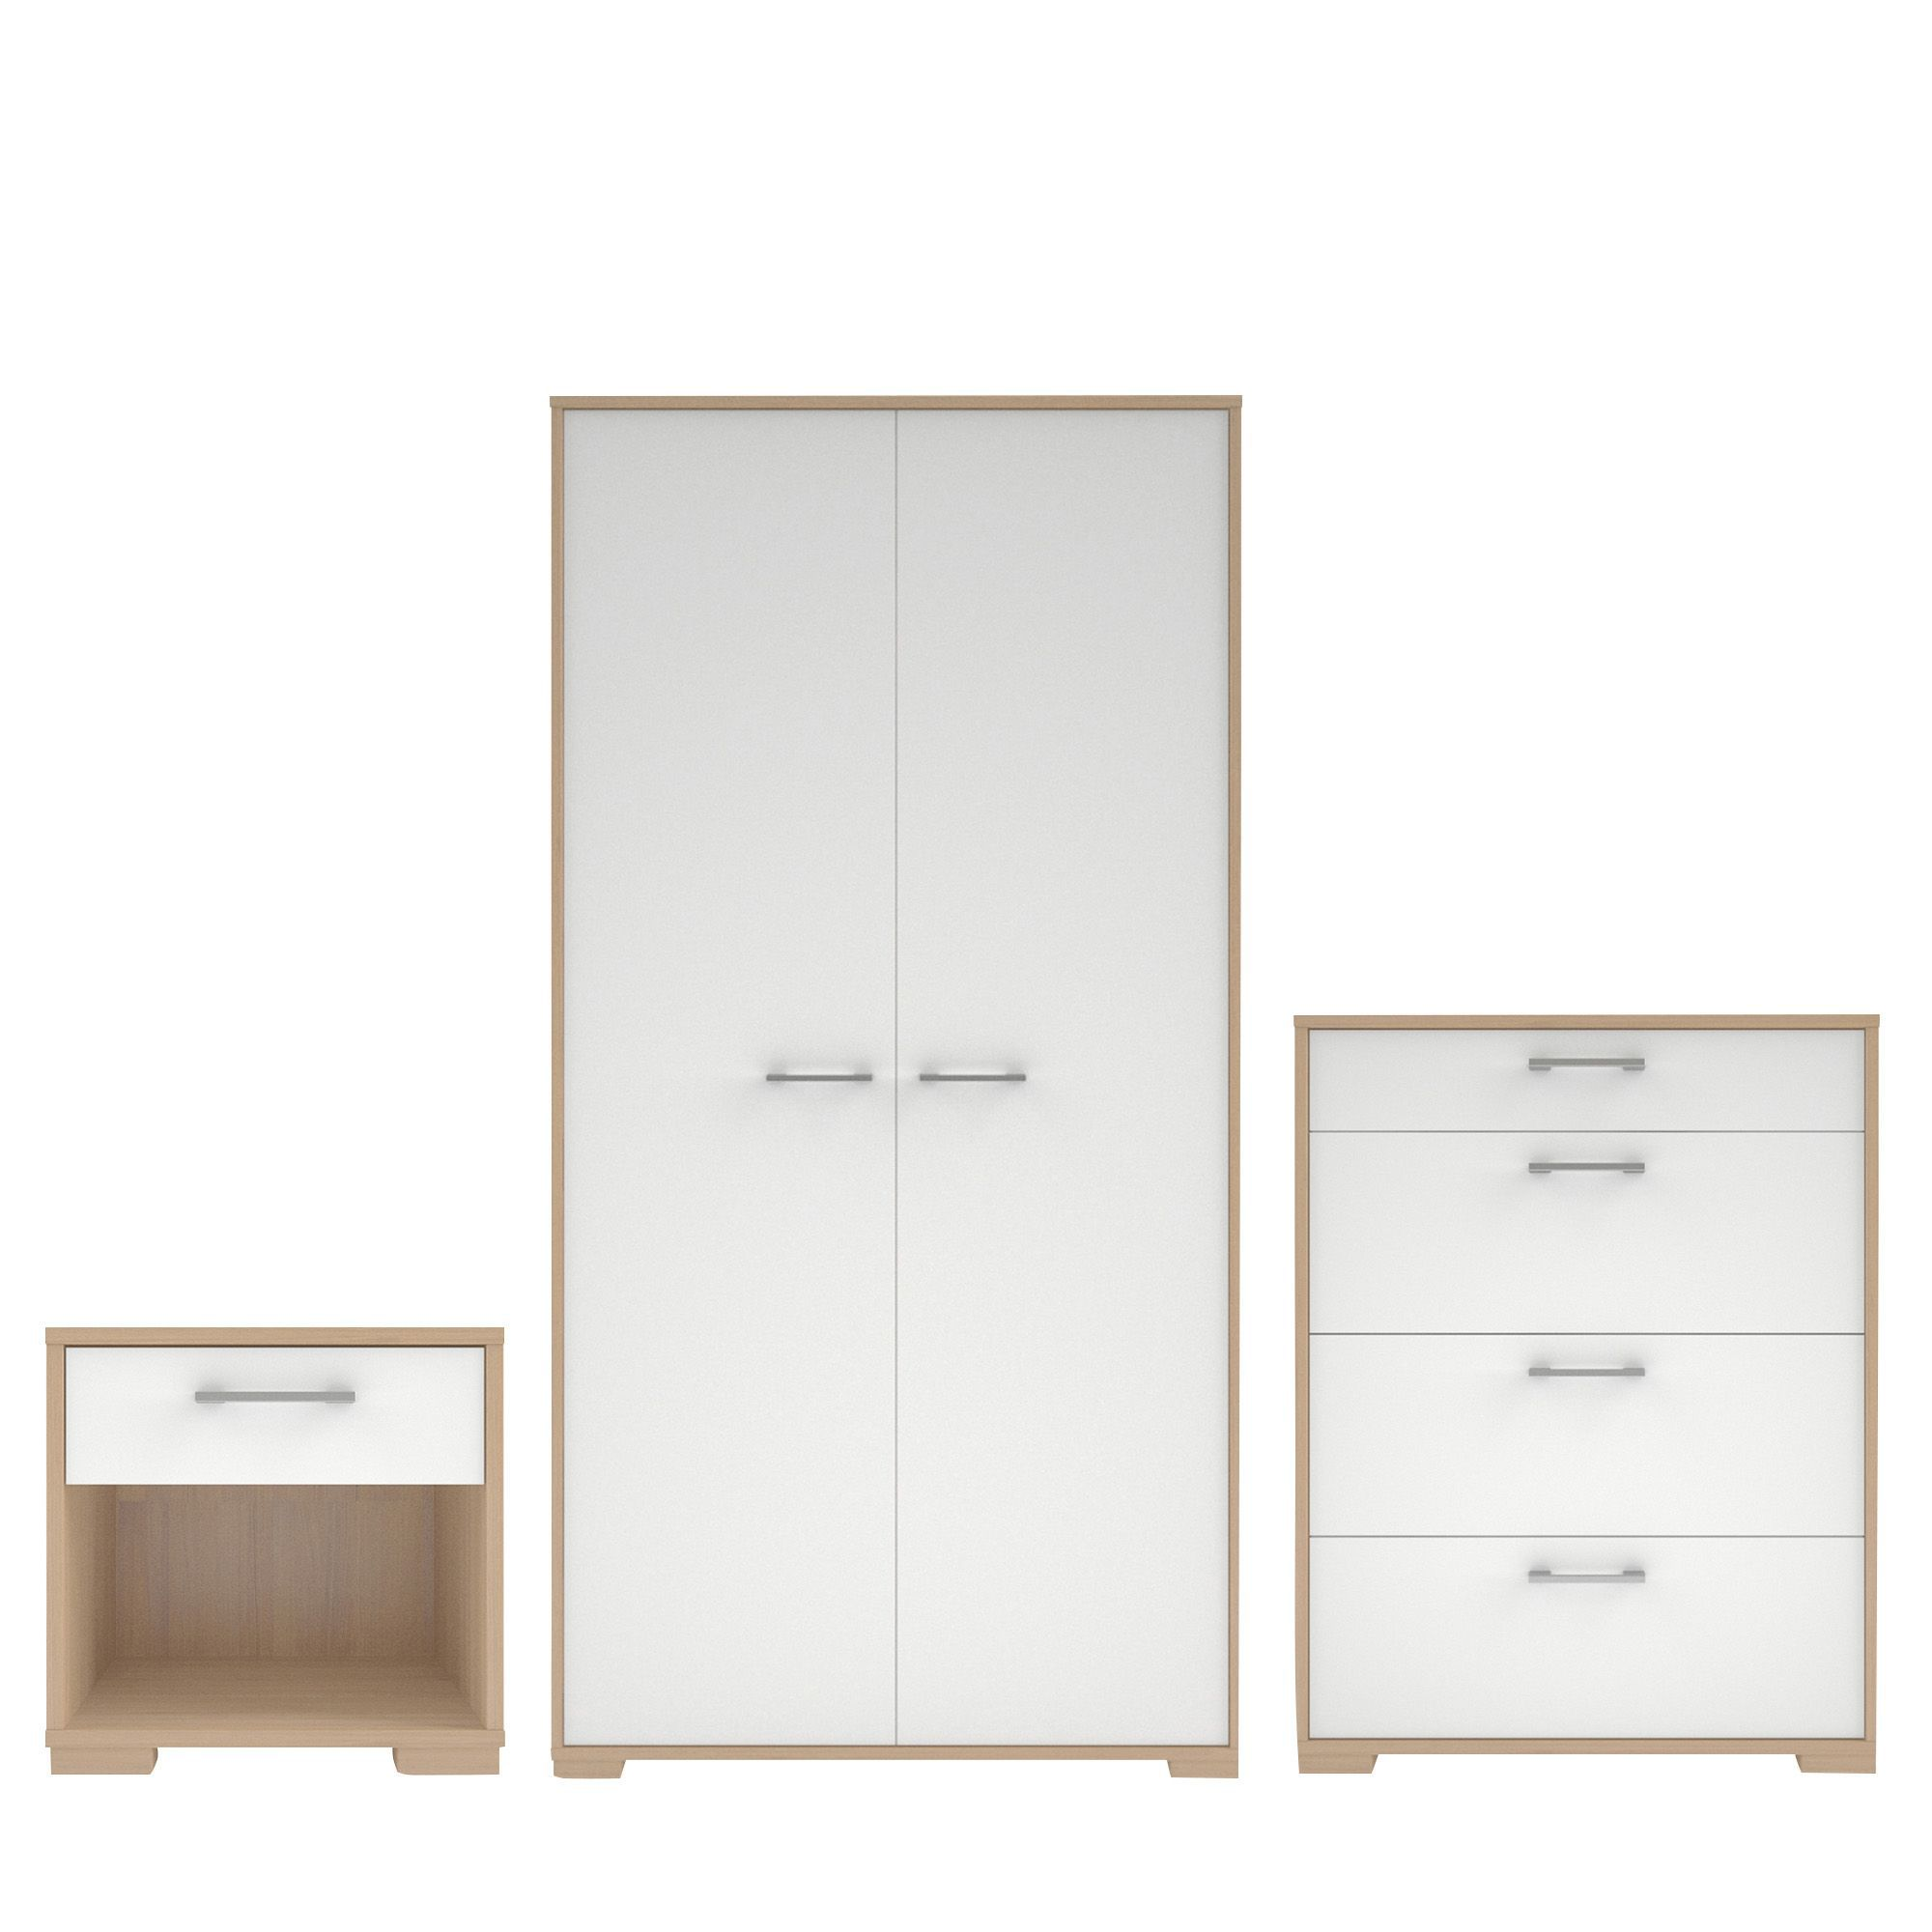 evie matt high gloss white oak effect 3 piece bedroom furniture set departments diy at bq - 3 Piece Bedroom Furniture Set